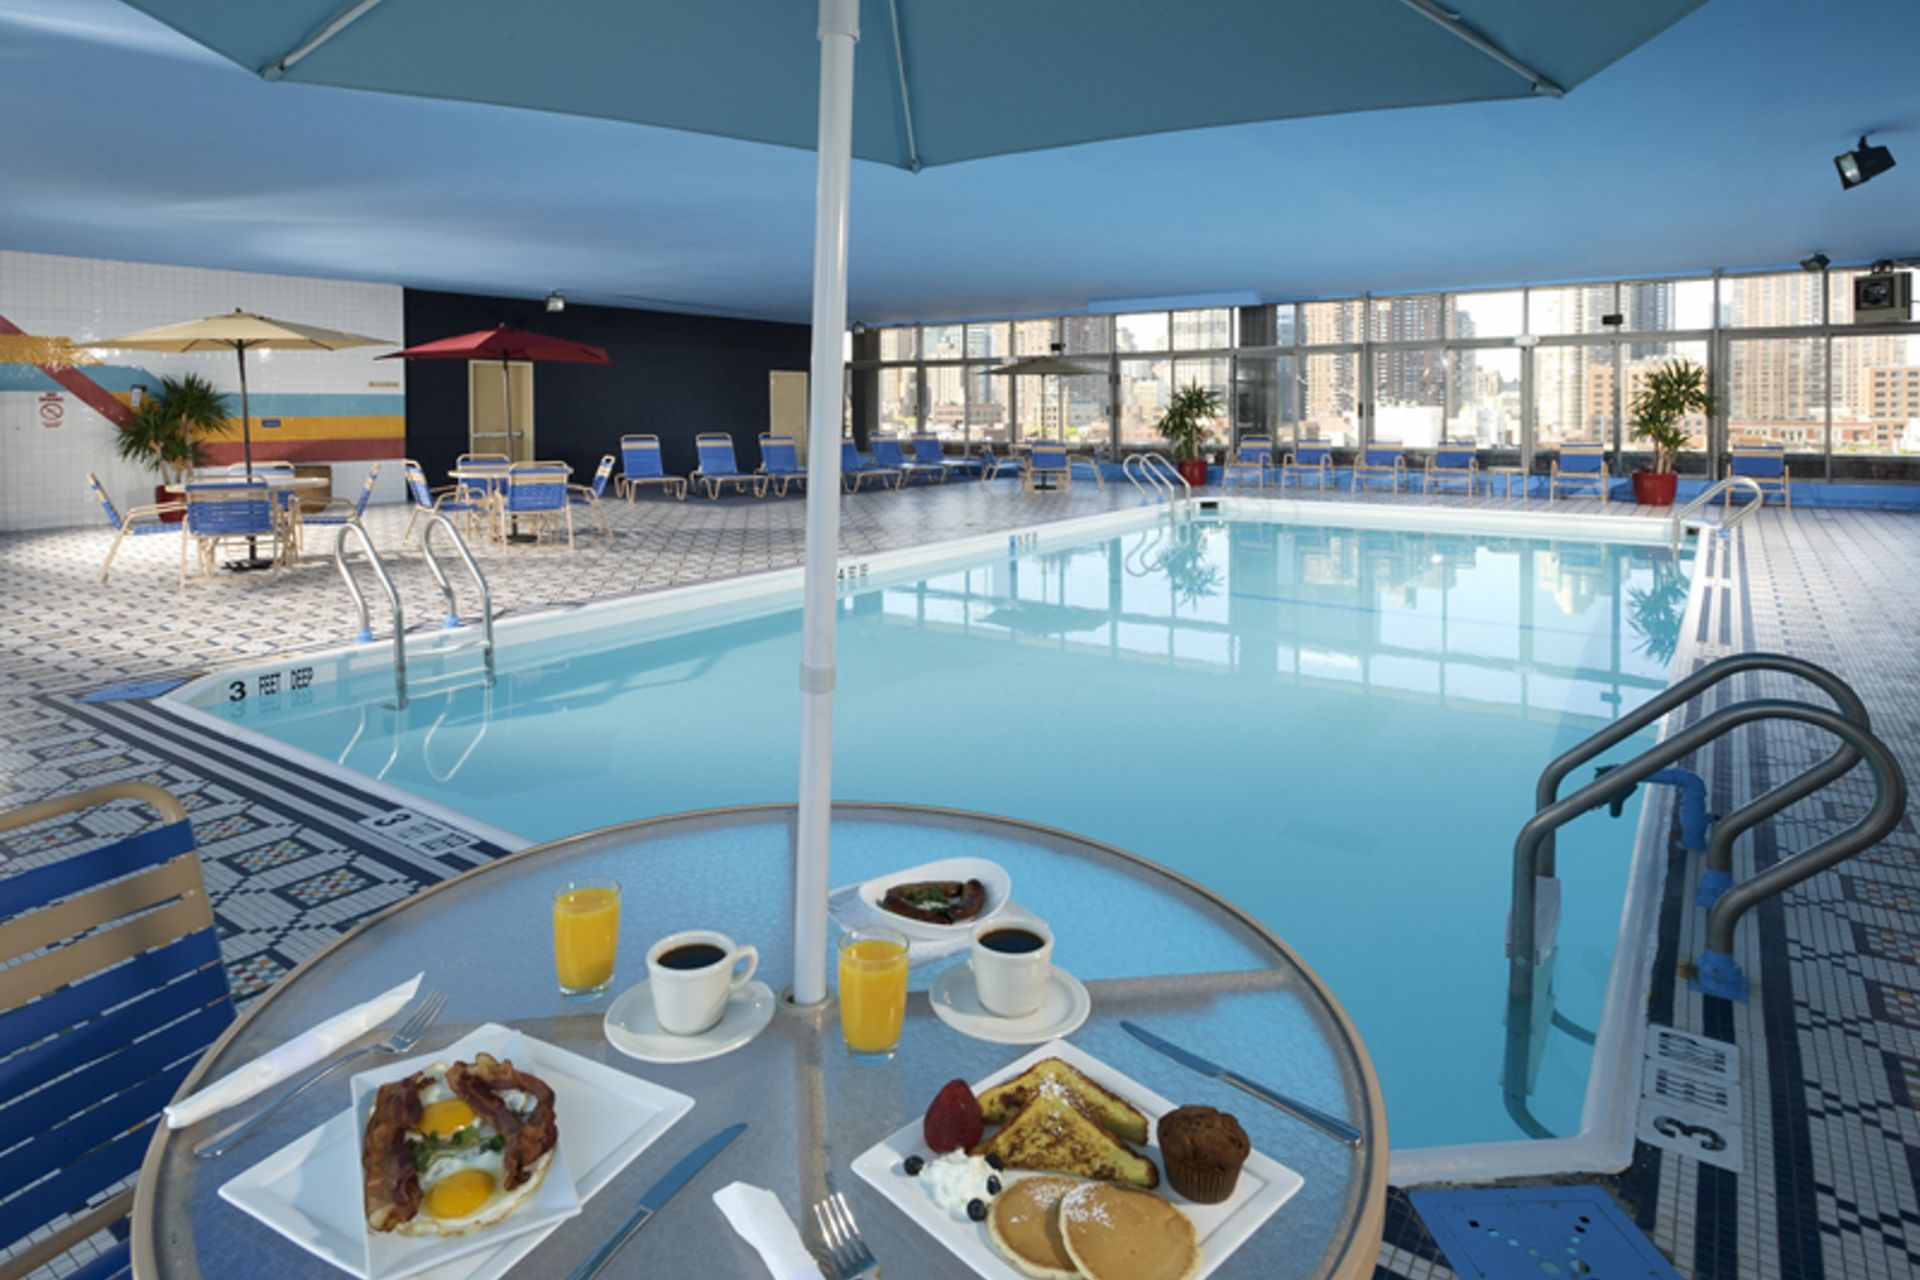 Breakfast by a indoor pool in NYC